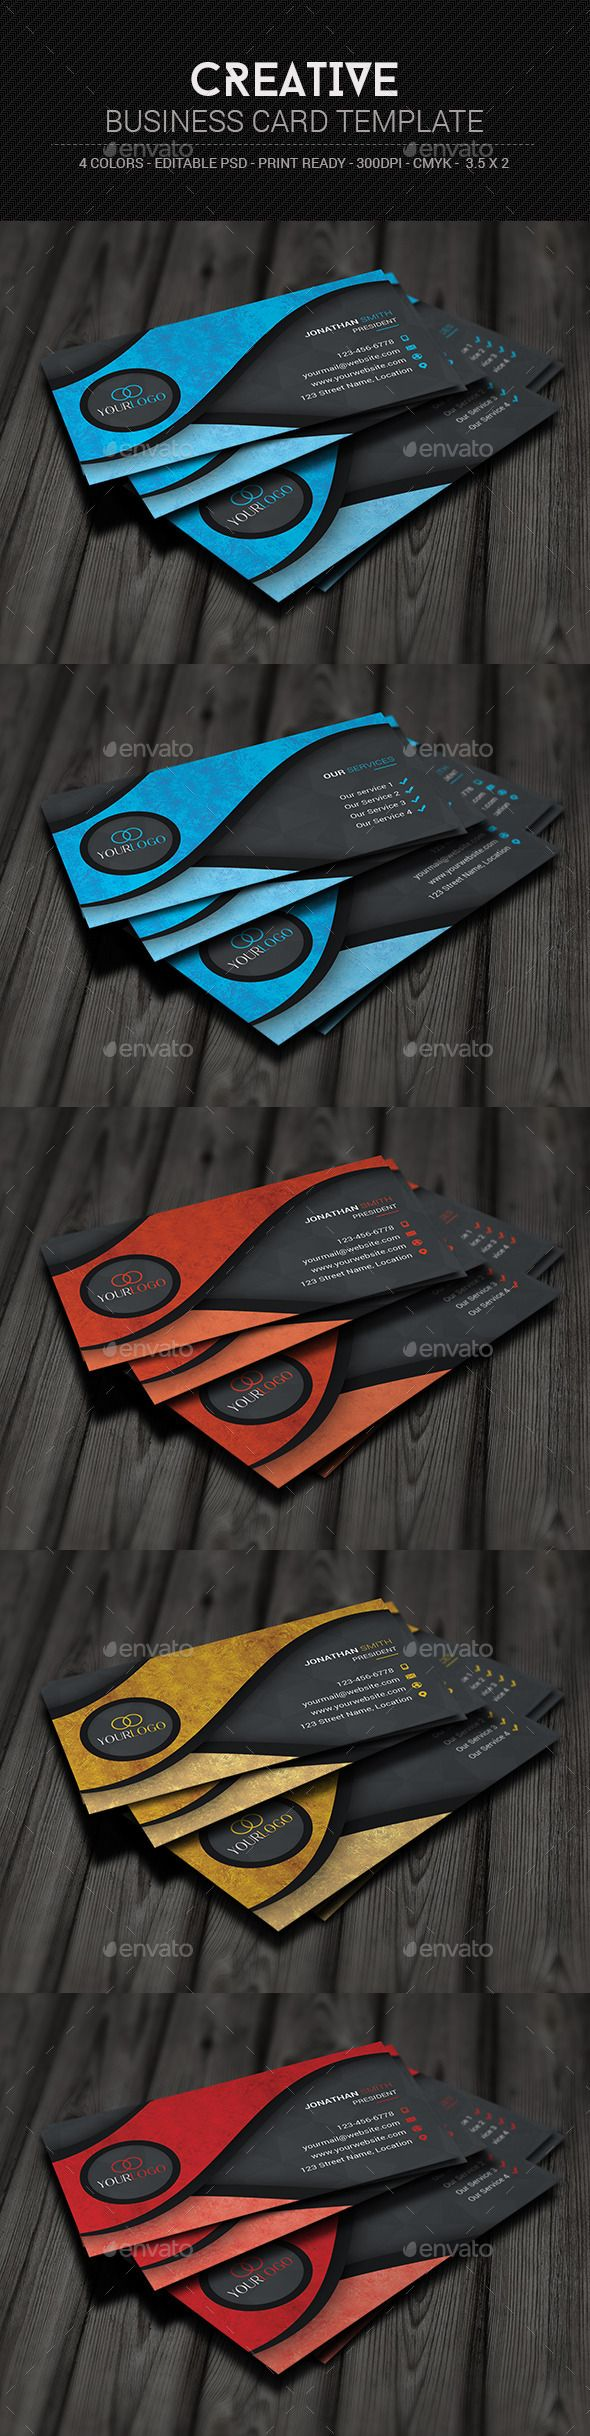 Creative Business Card Template #design Download: http://graphicriver.net/item/creative-business-card-template/11129174?ref=ksioks